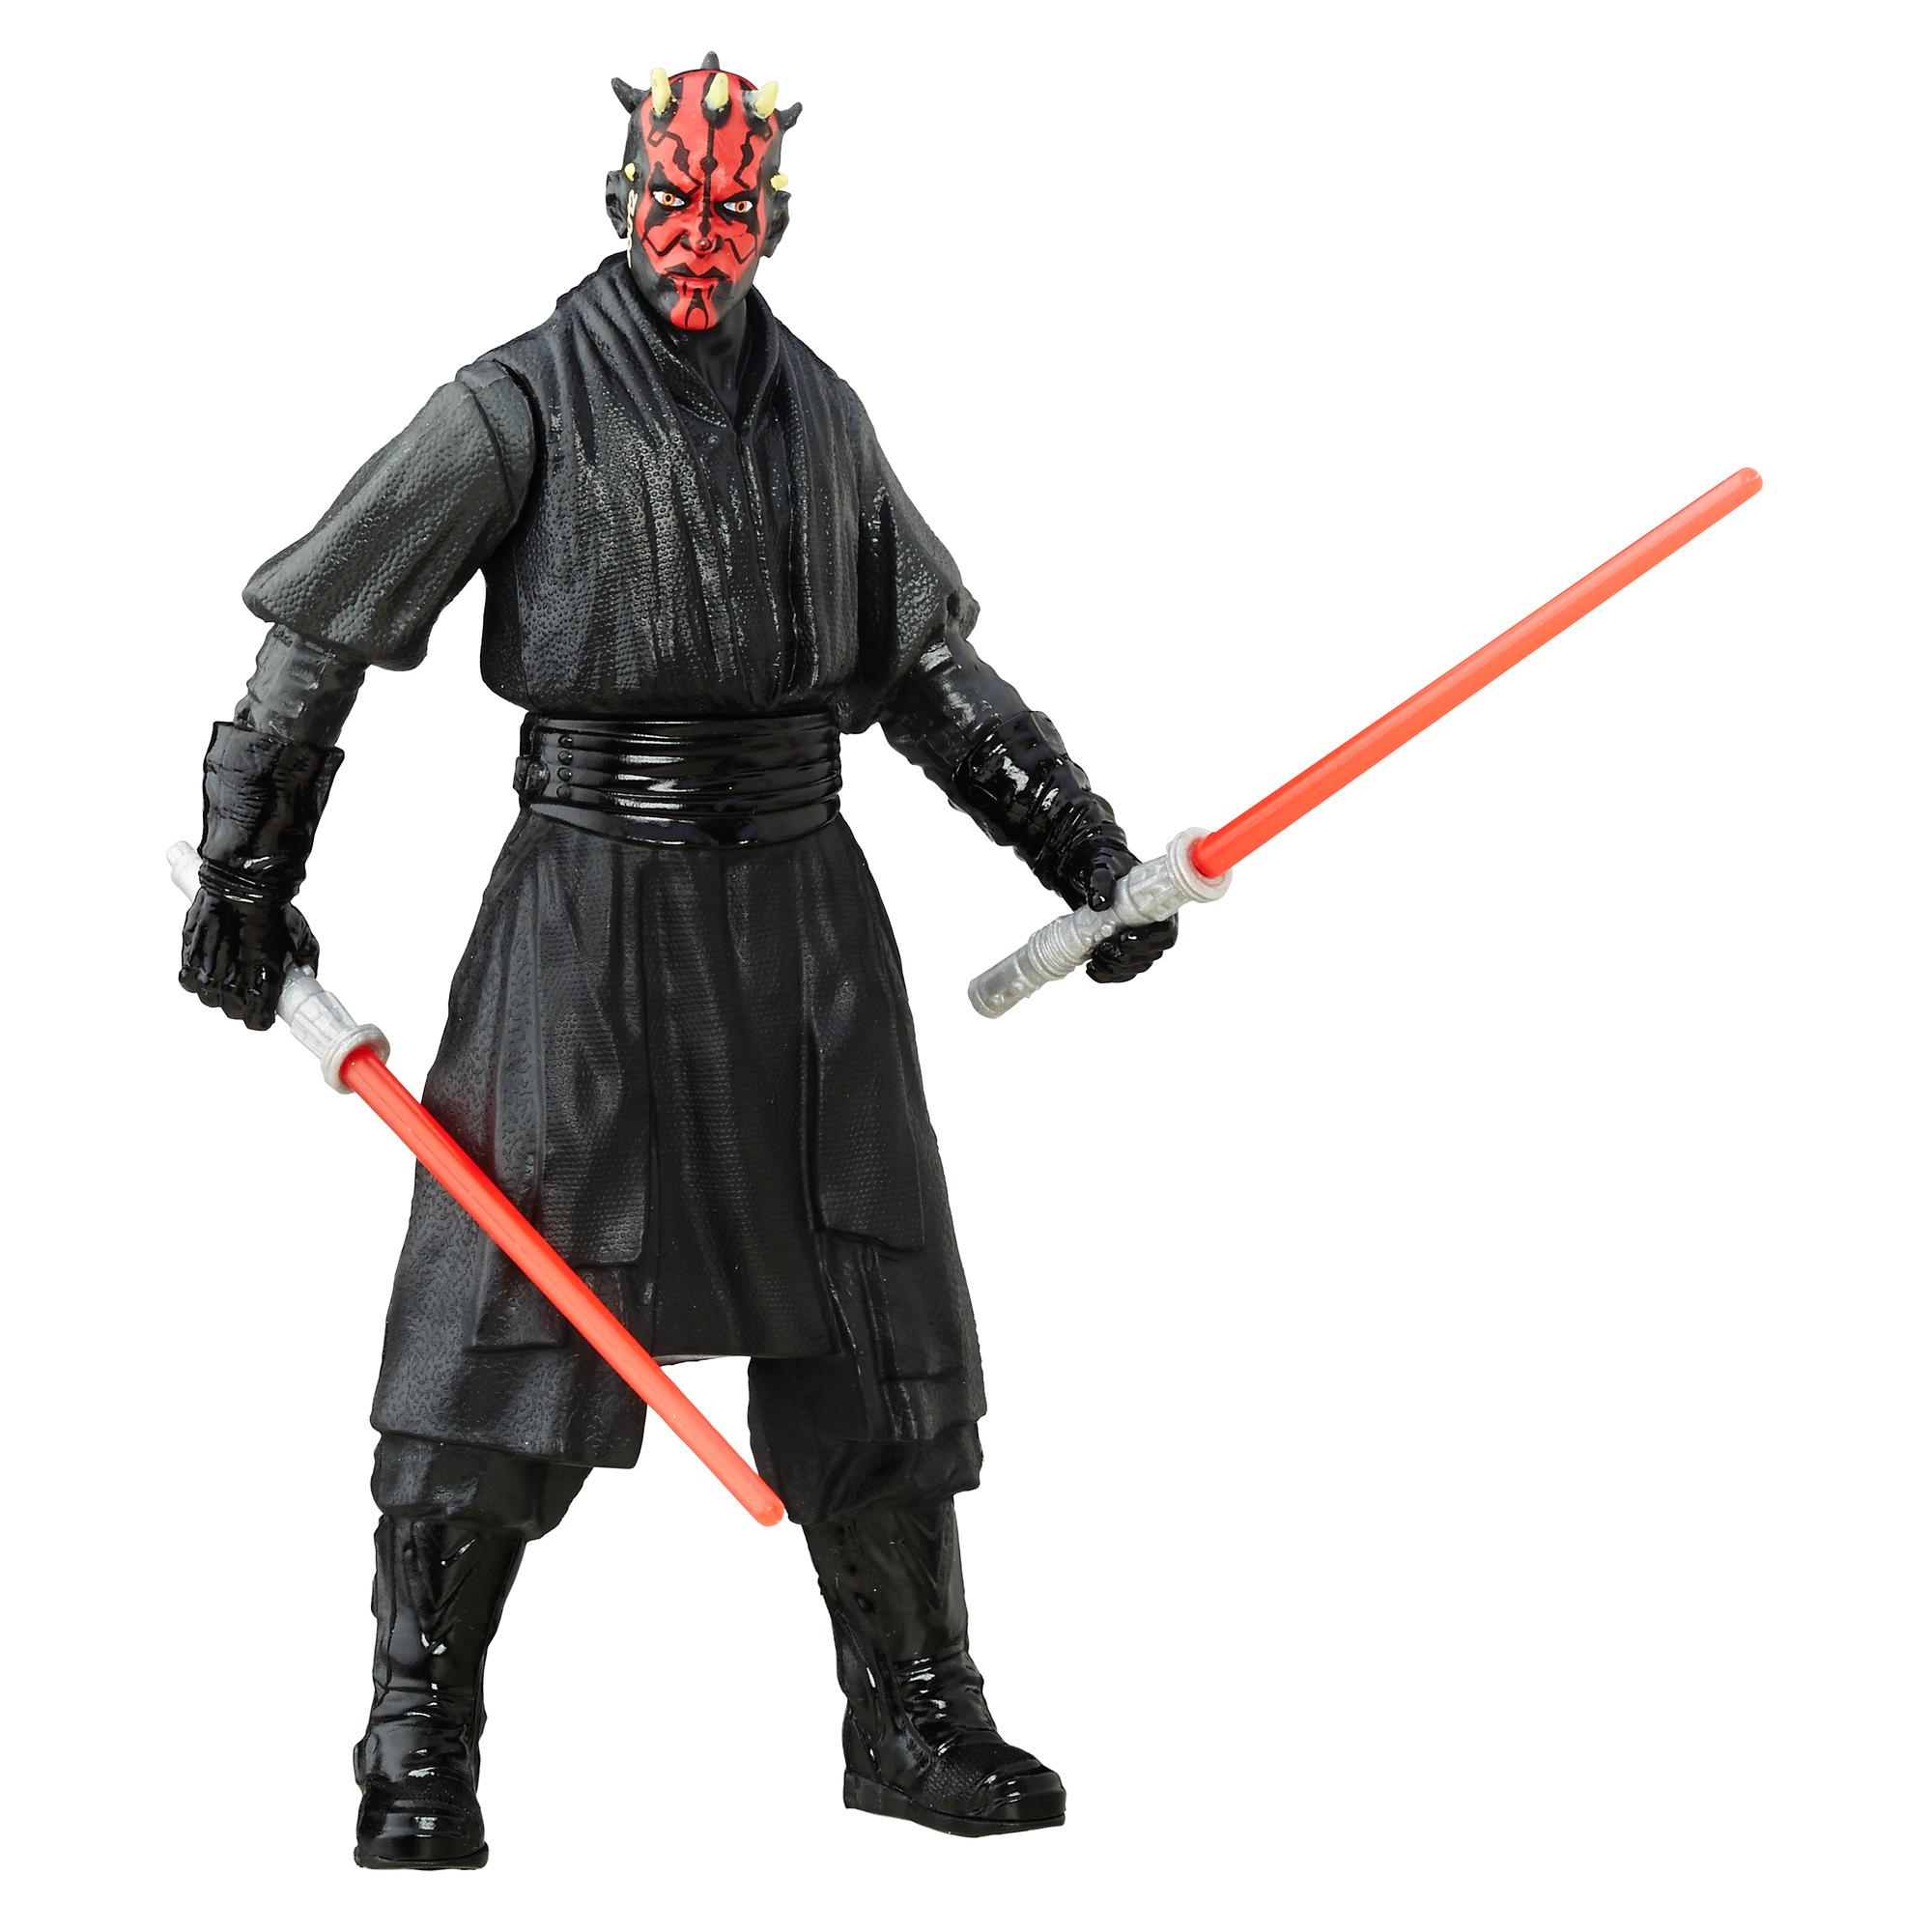 Star Wars E1 Darth Maul